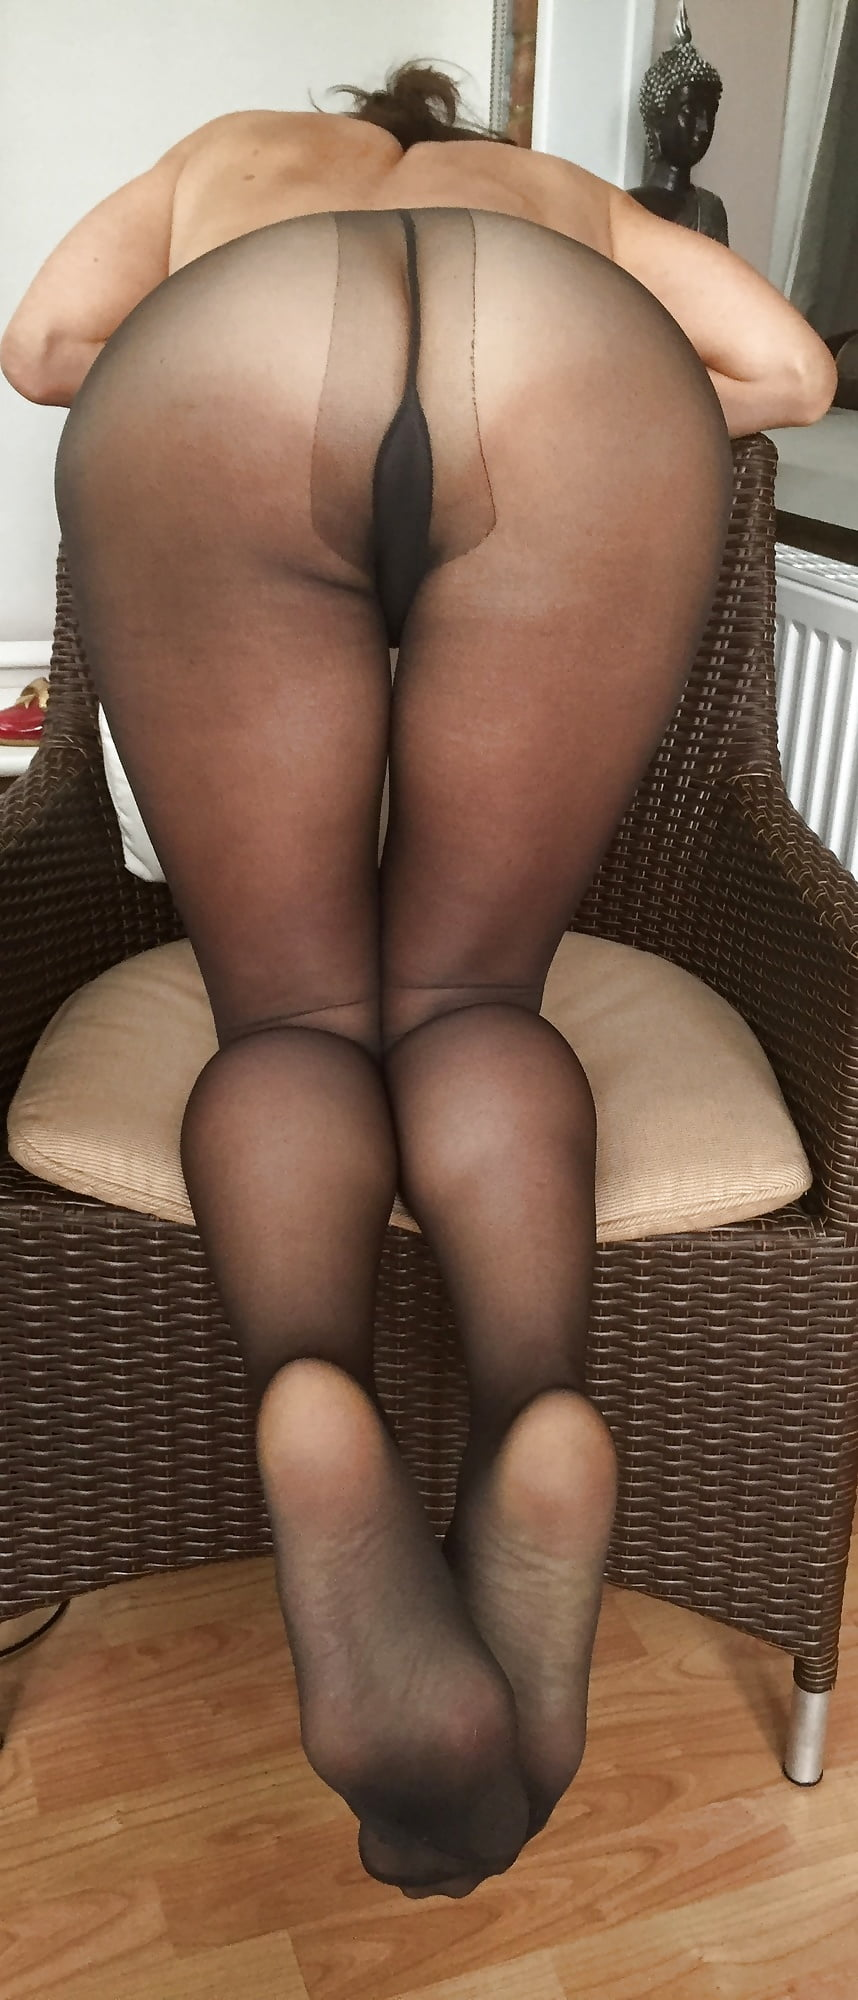 Pantyhose mature buzzed after xmas party - 3 part 8